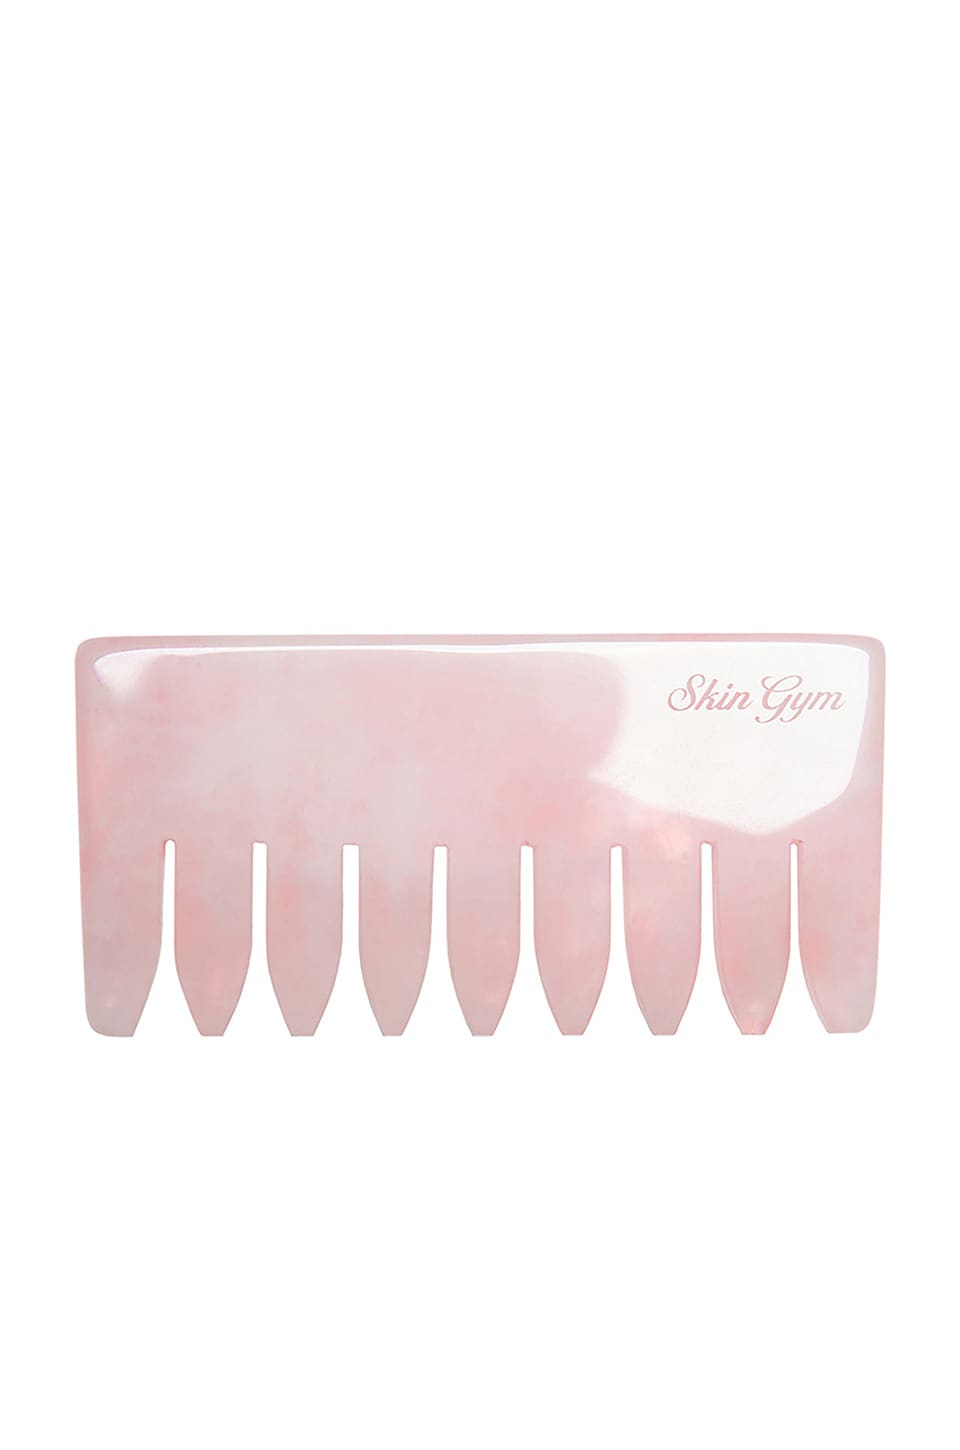 Skin Gym Rose Quartz Crystal Hair Comb